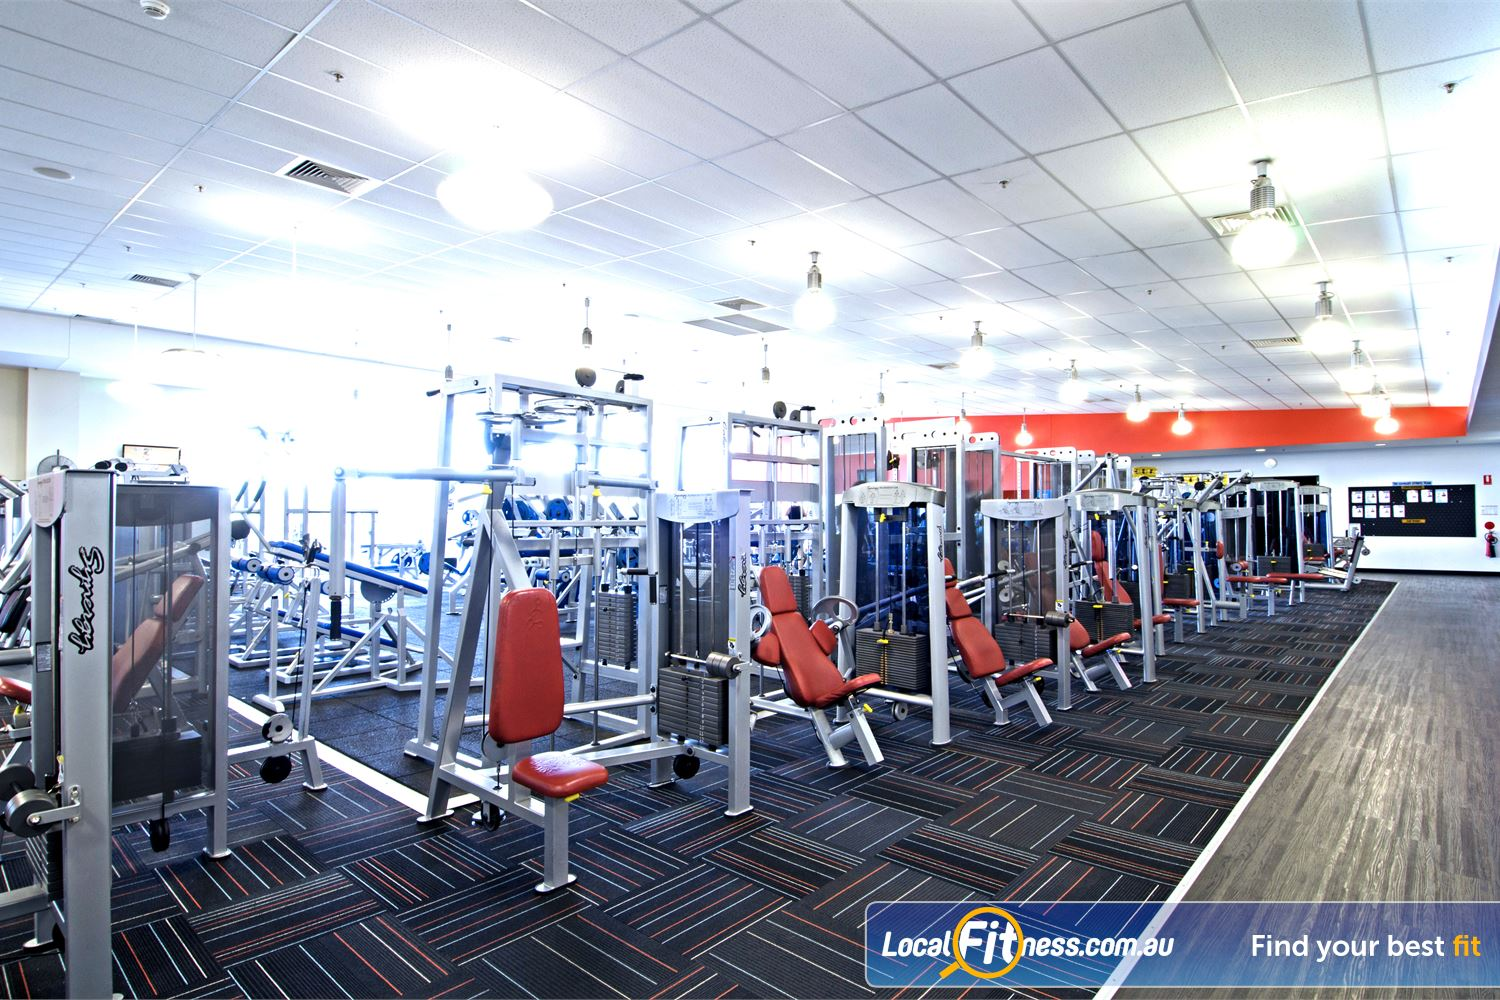 Goodlife Health Clubs Near Aspley Enjoy a wide selection of equipment from Calgym and Life Fitness.